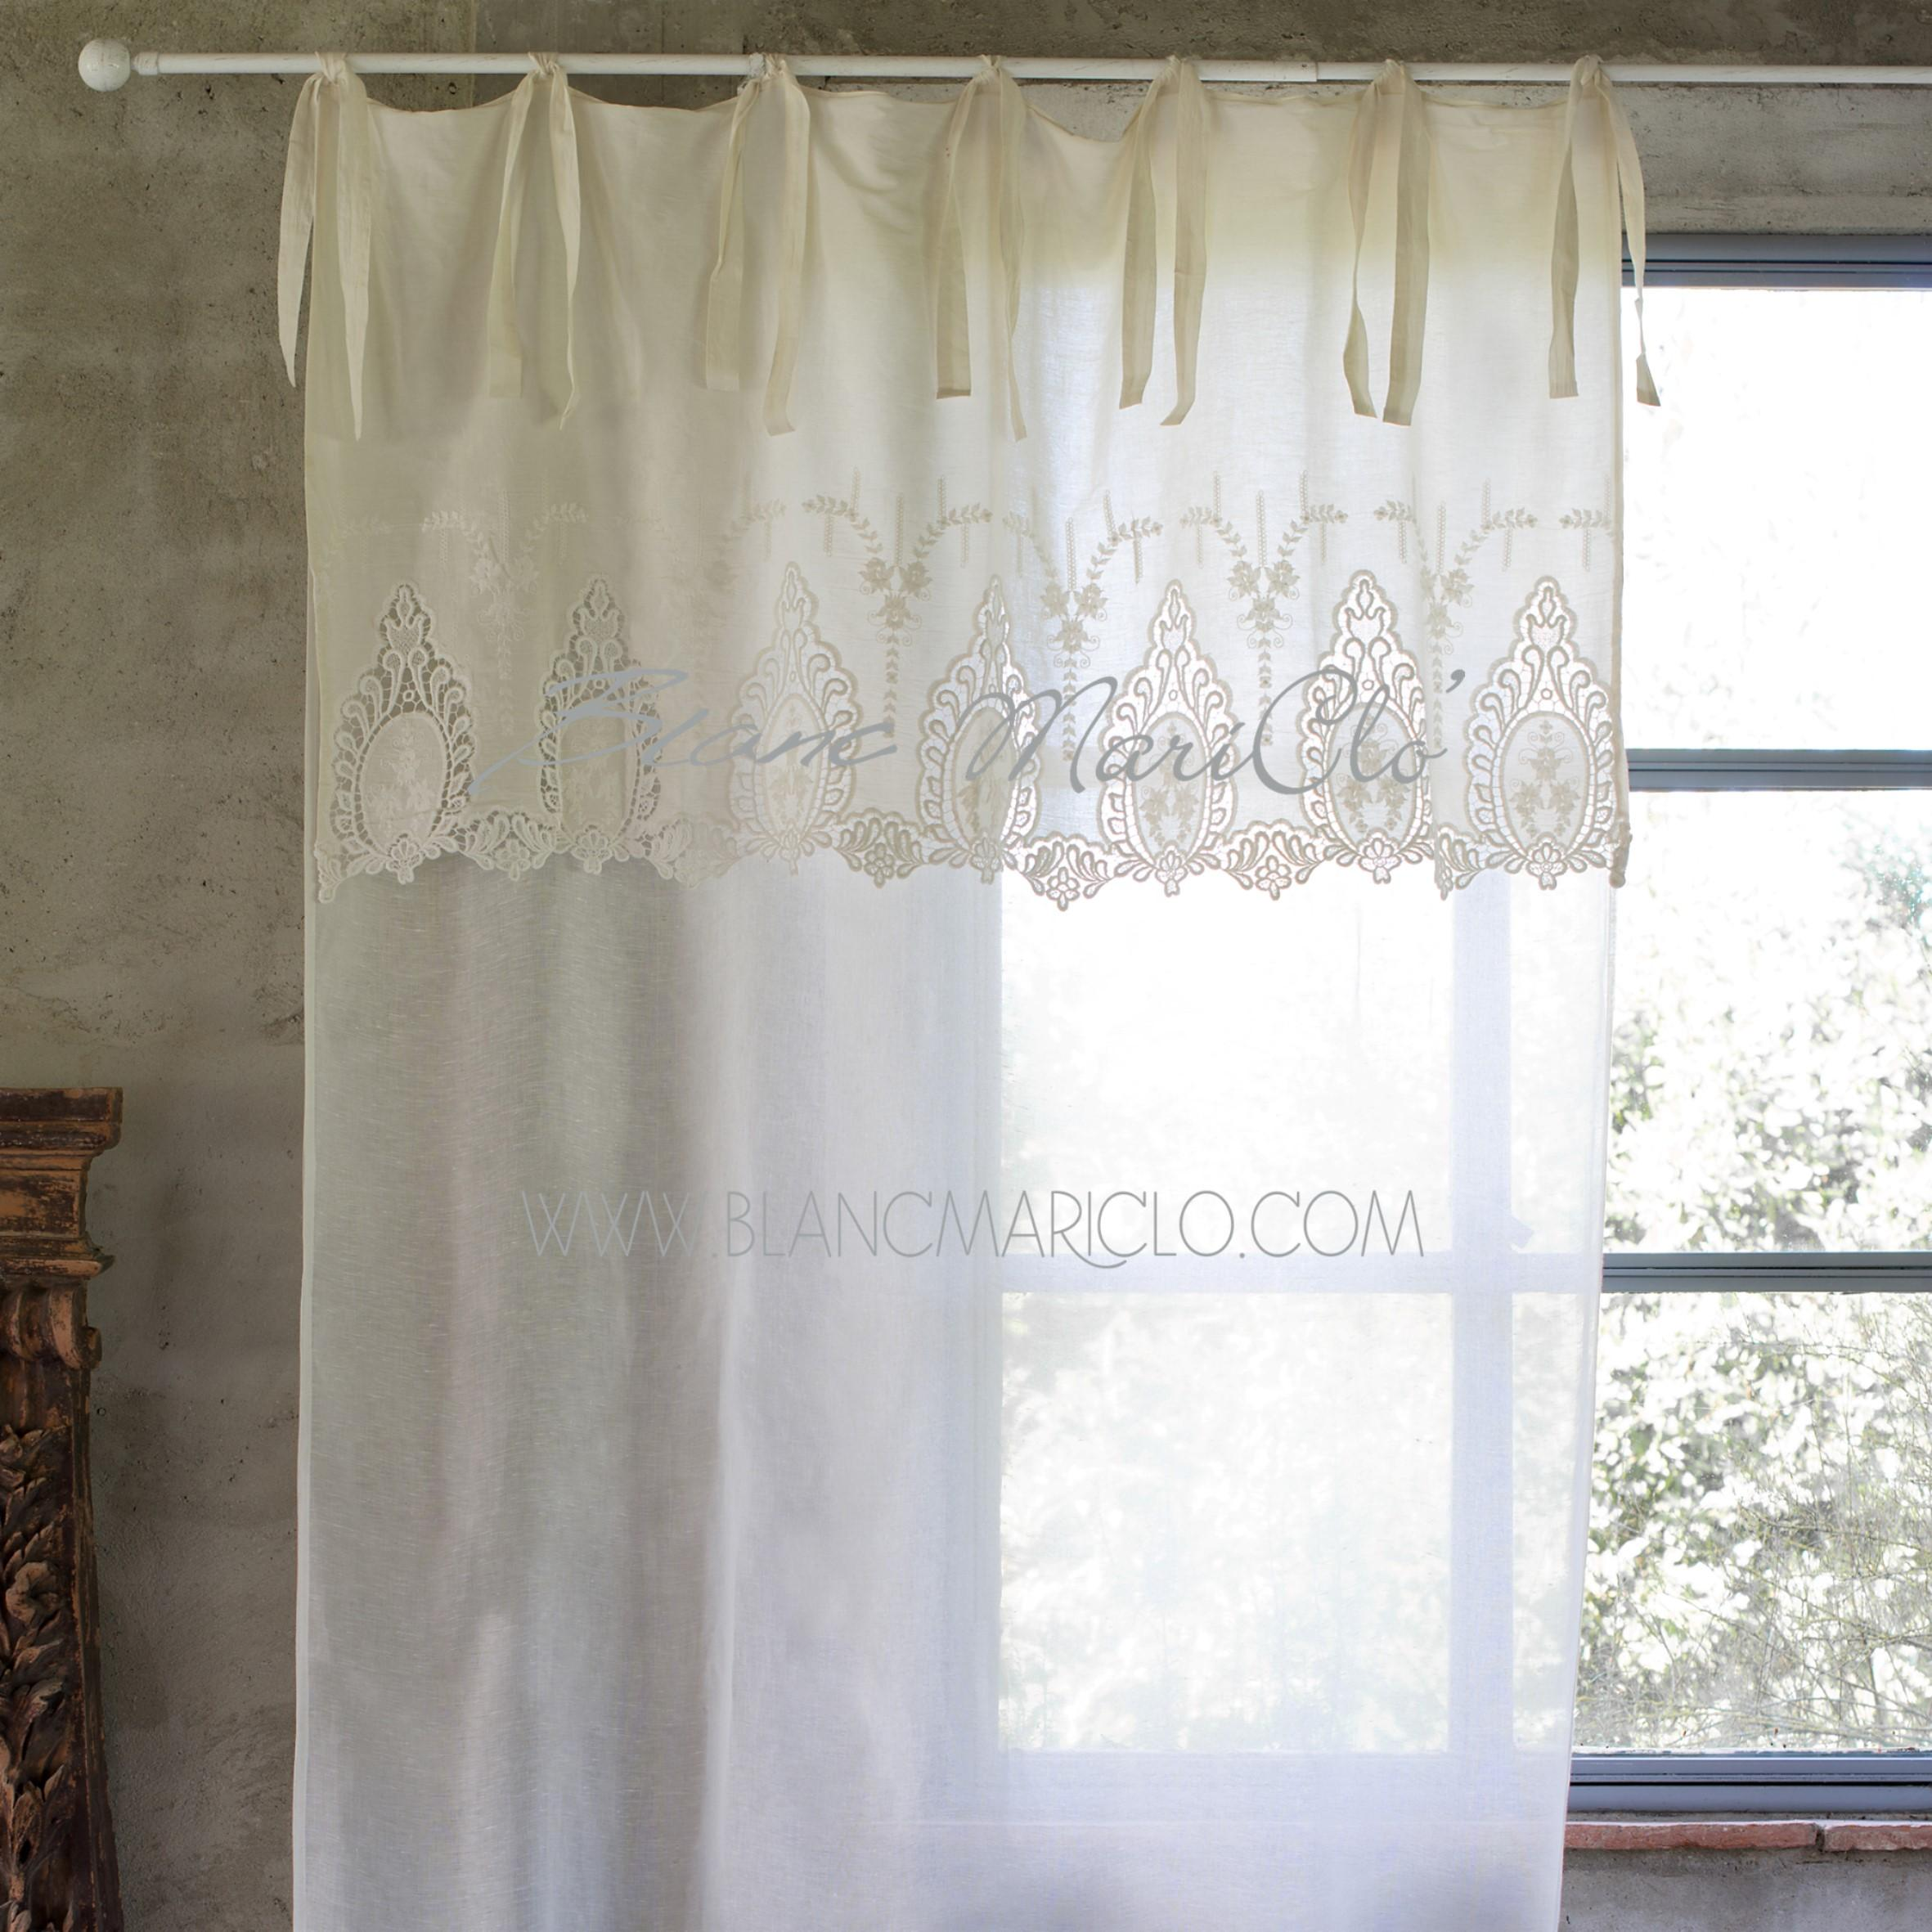 Blanc mariclo follie shop online shabby chic for Tende shabby chic on line